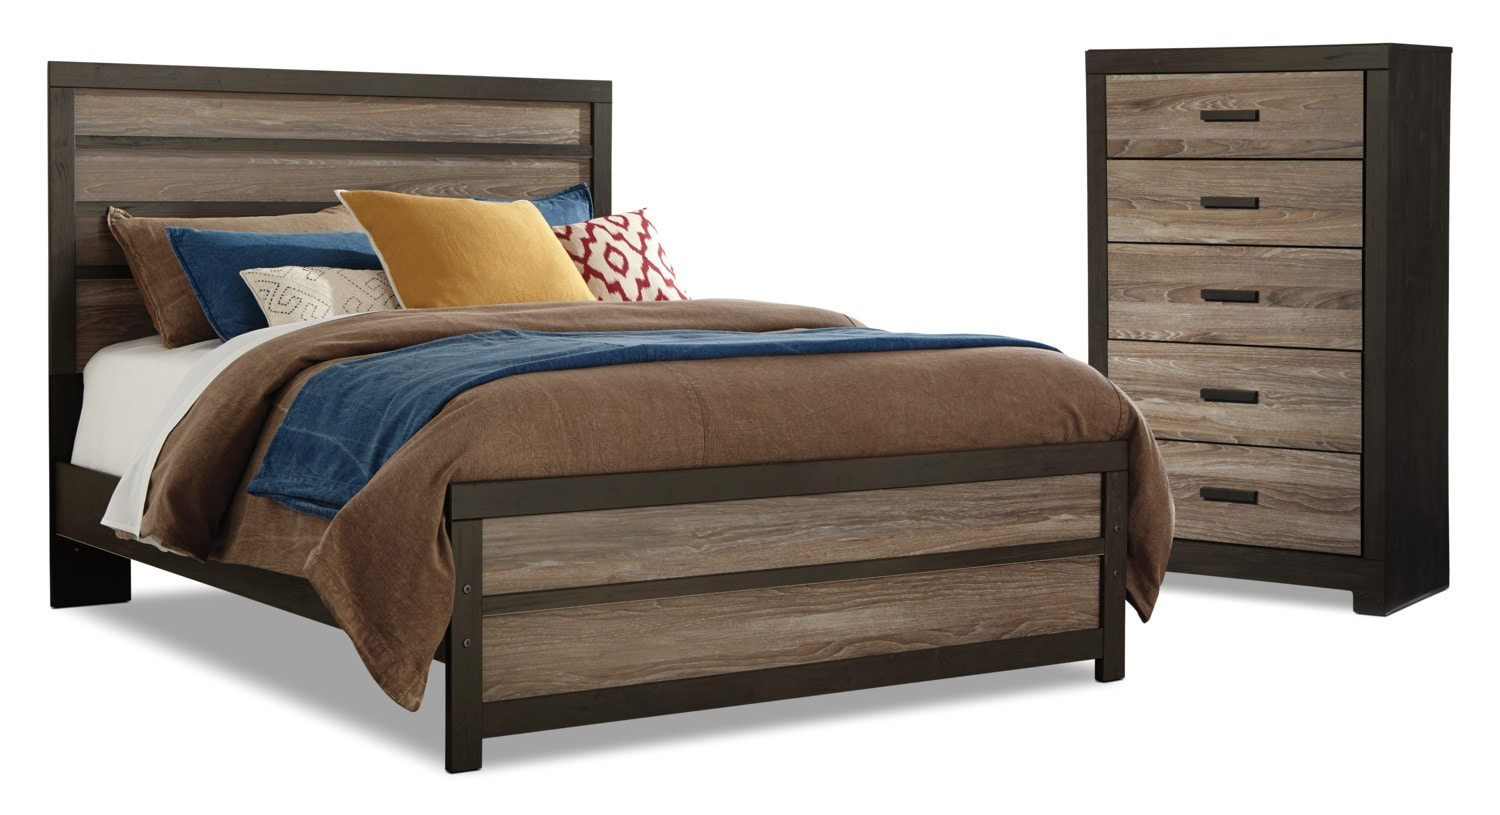 Harlinton 4-Piece Queen Bed and Chest Package